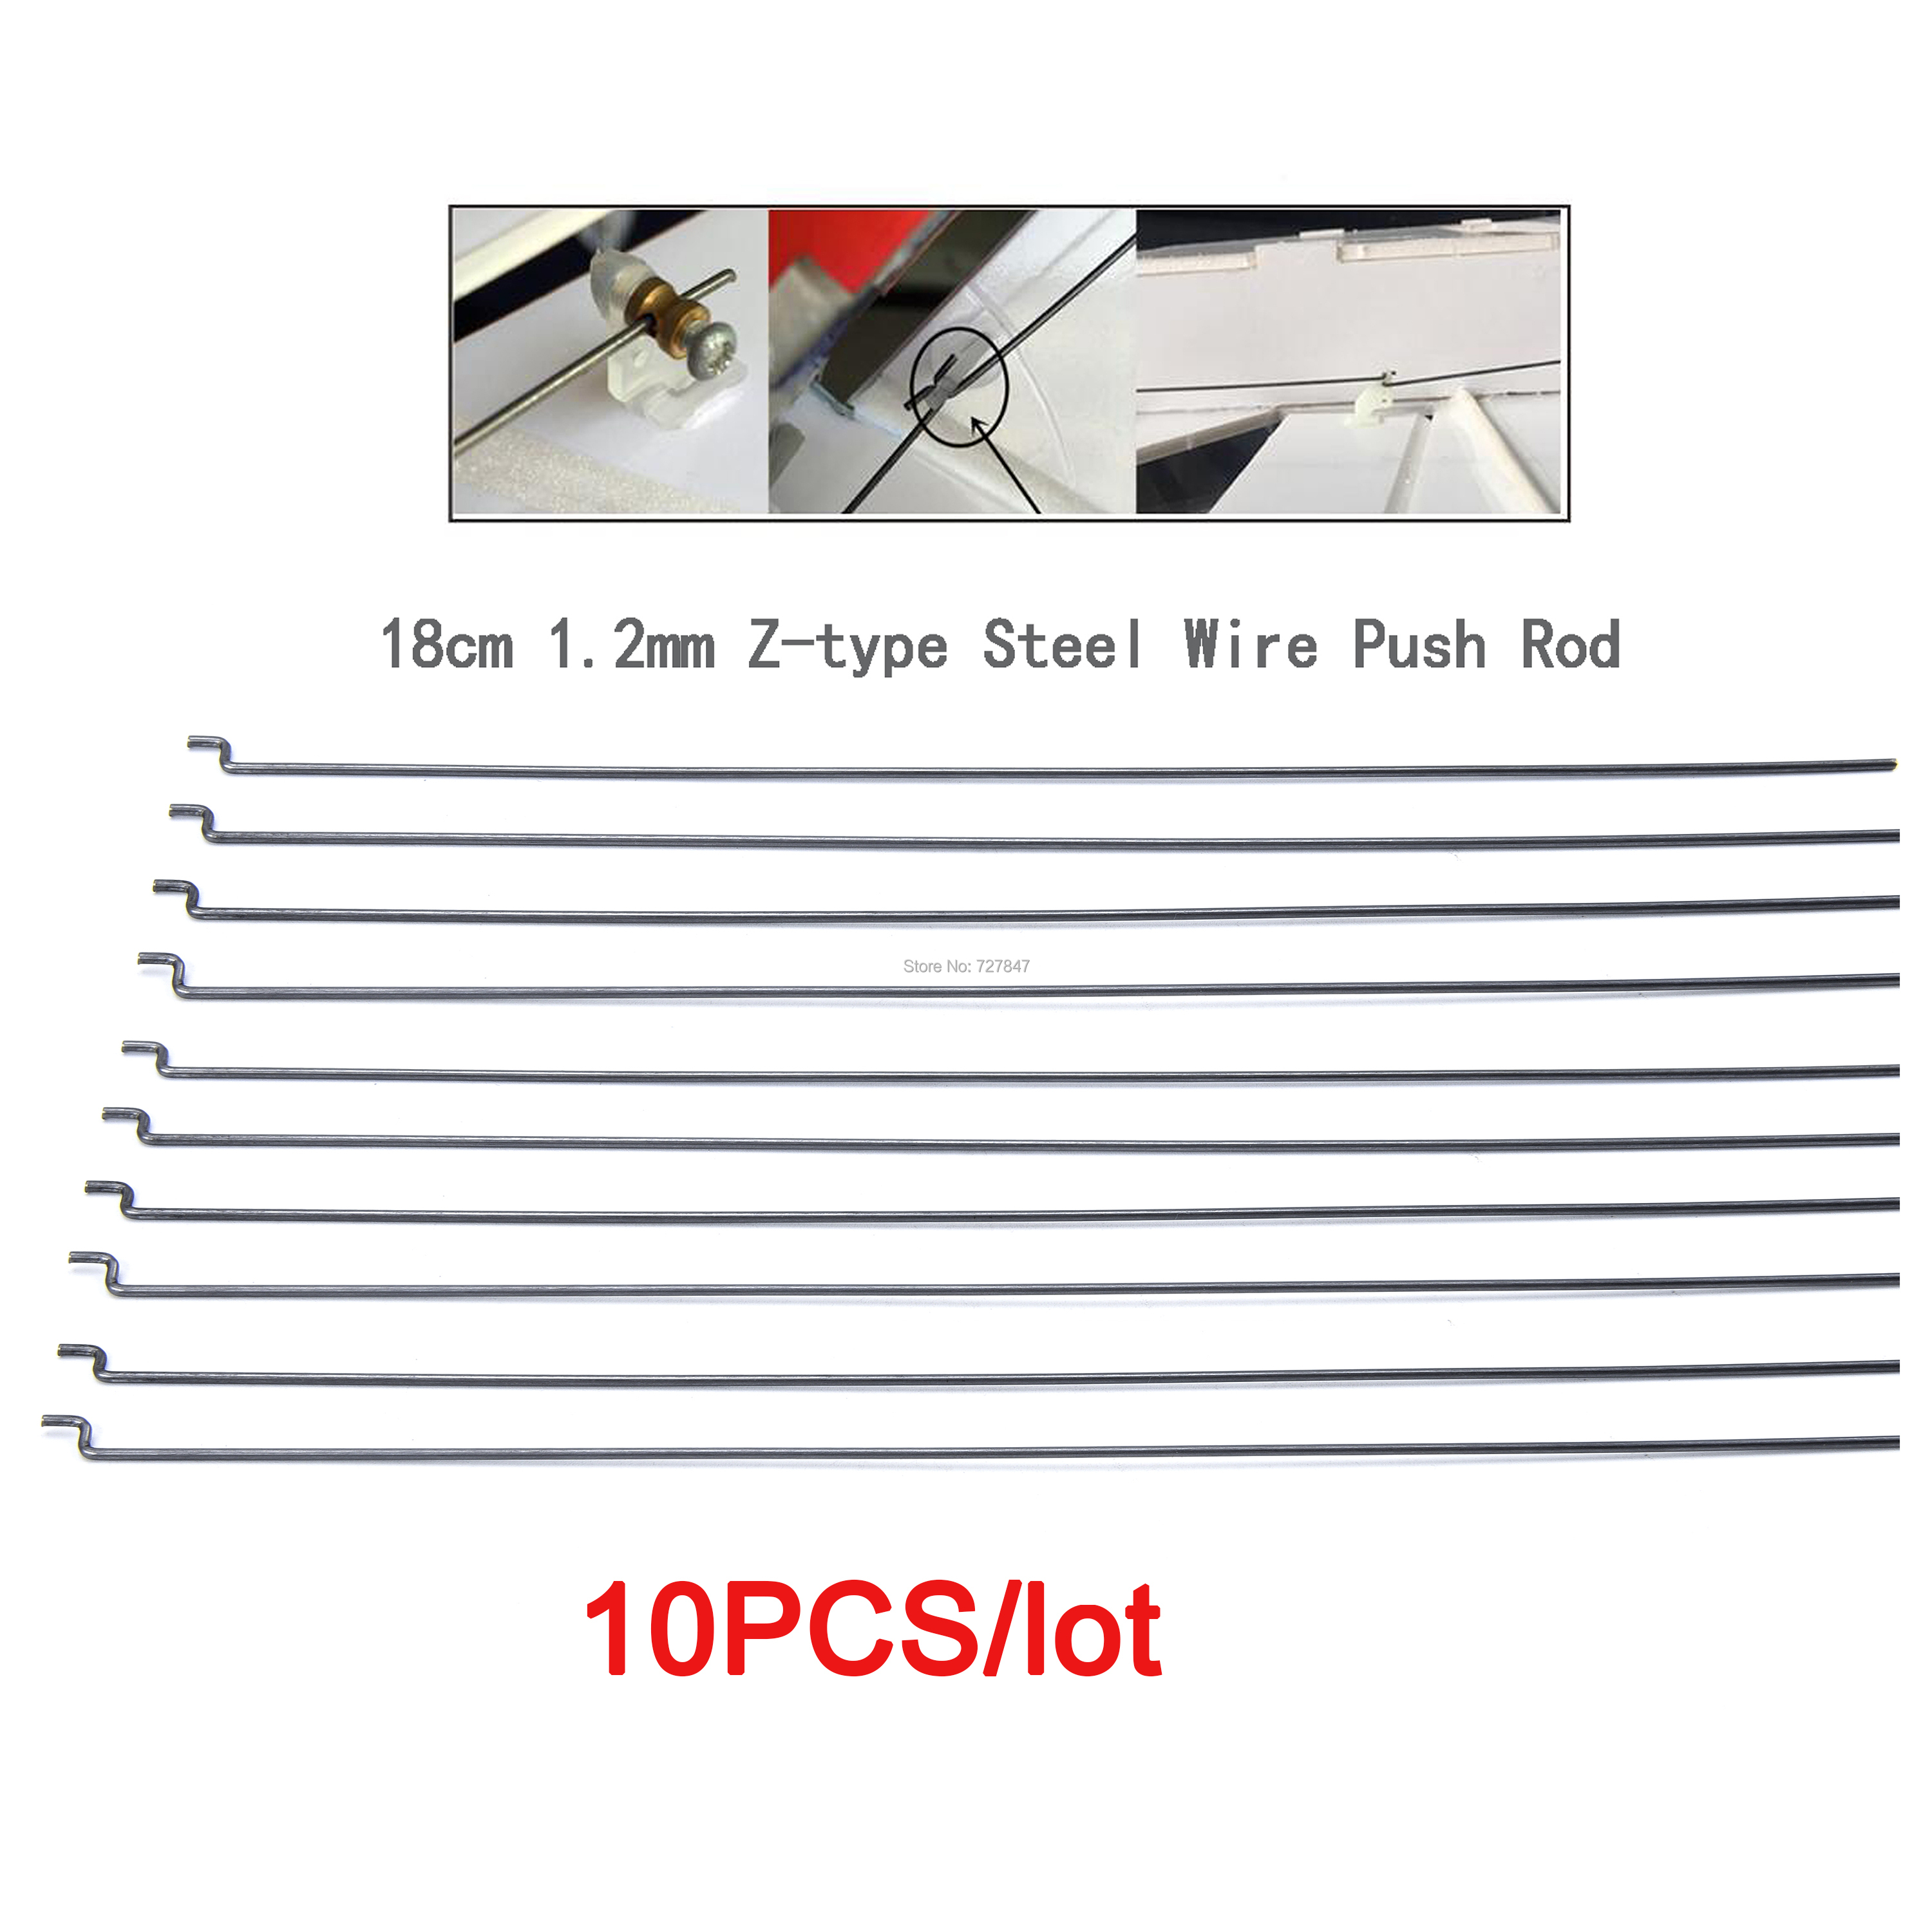 10pcs/lot 20.3cm 1.2mm Z-type Steel Wire Push Rod For SU27 KT Board RC Airplane